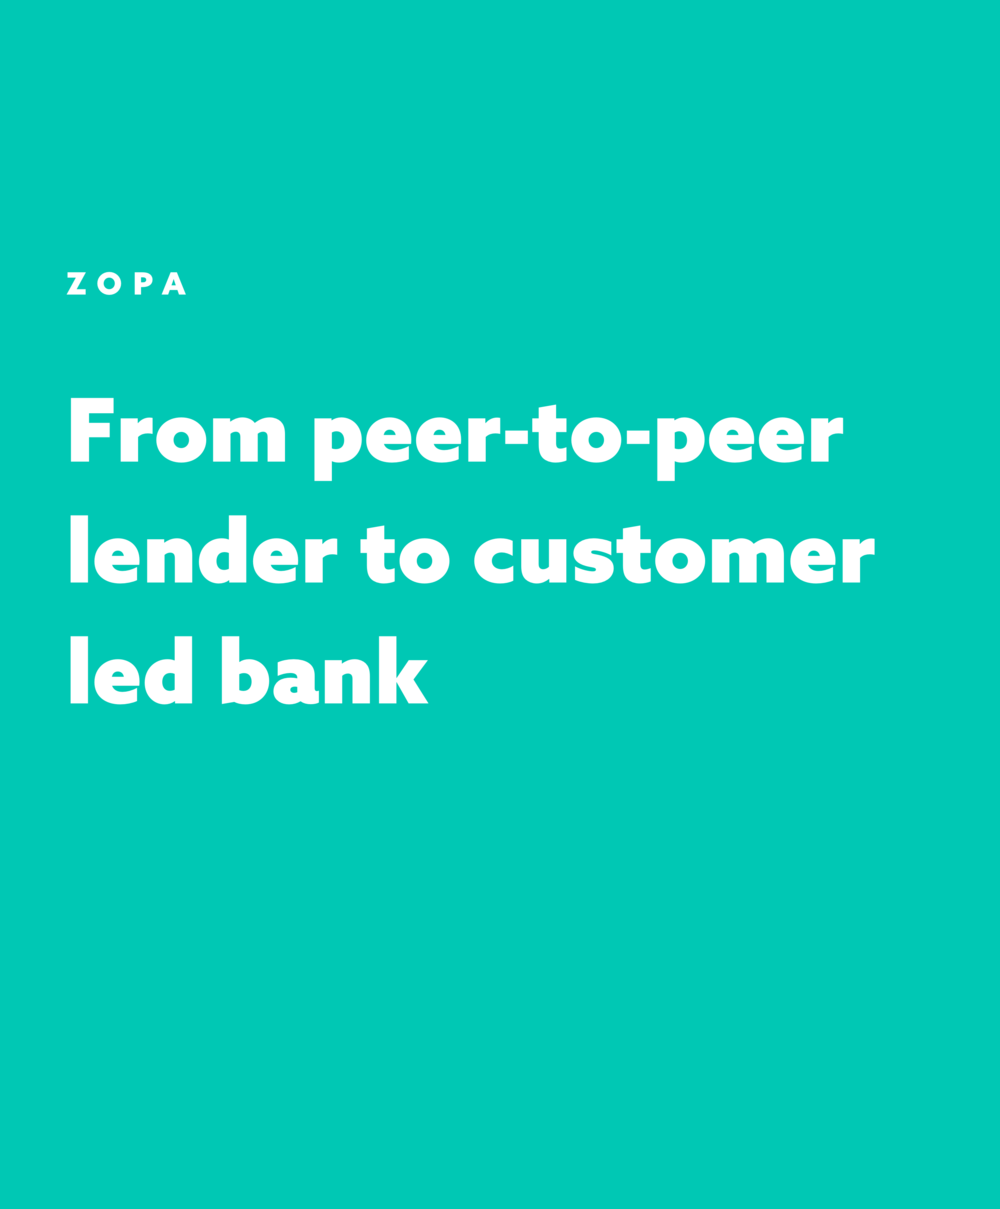 ZOPA.png